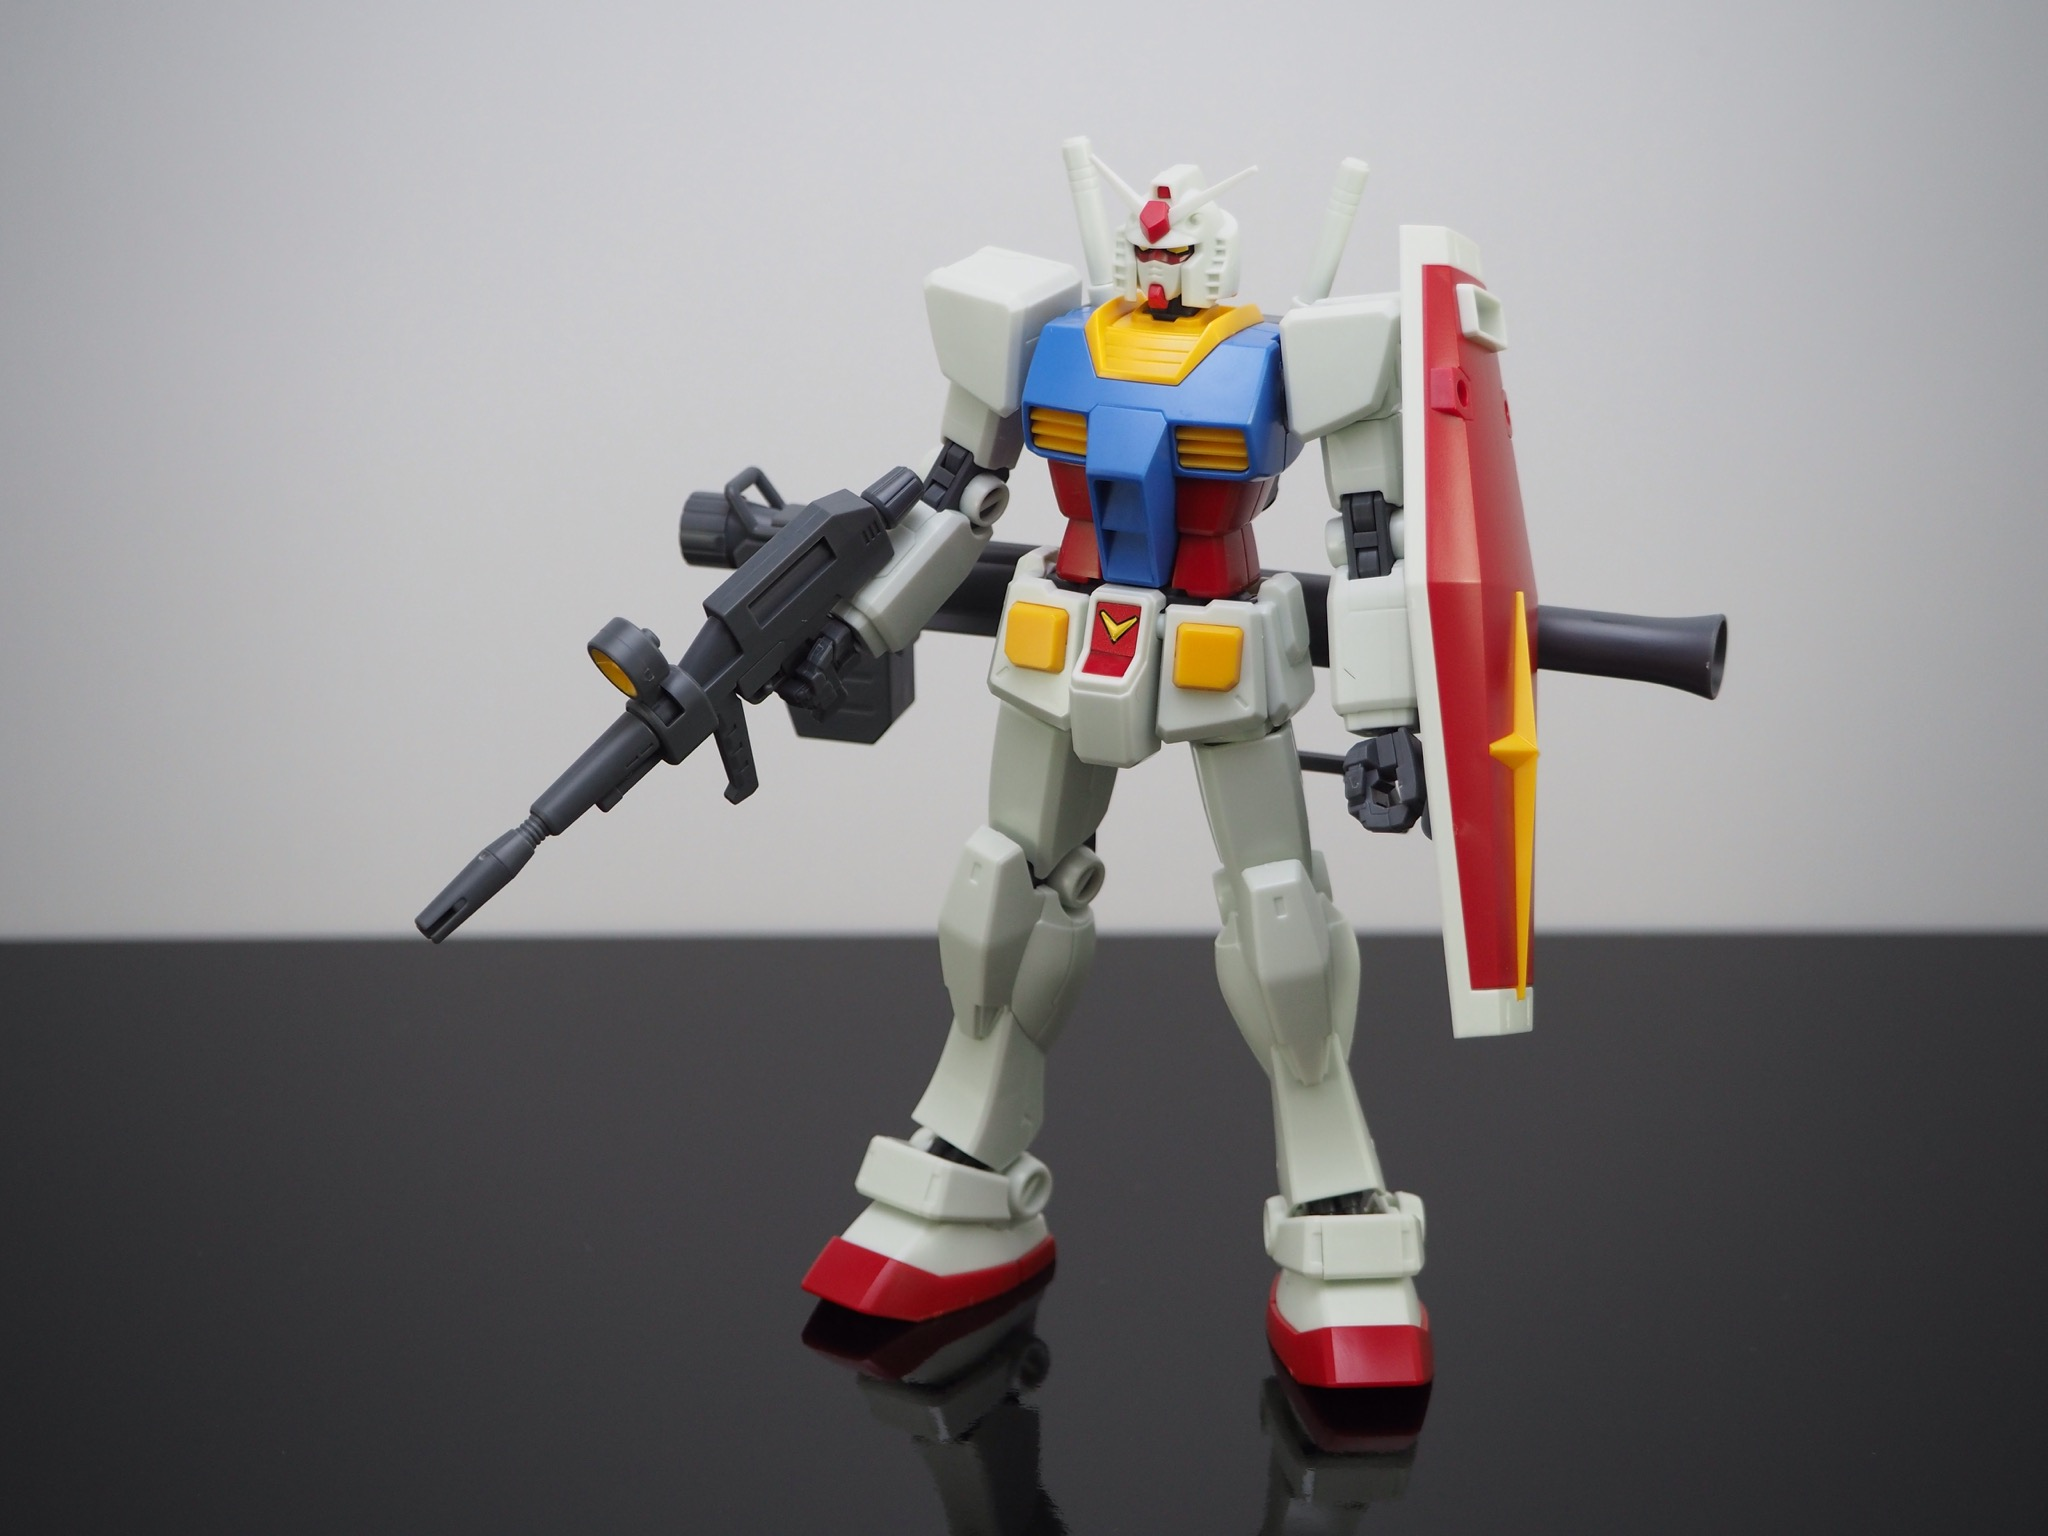 HGUC REVIVE 1/144 RX-78-2 ガンダム